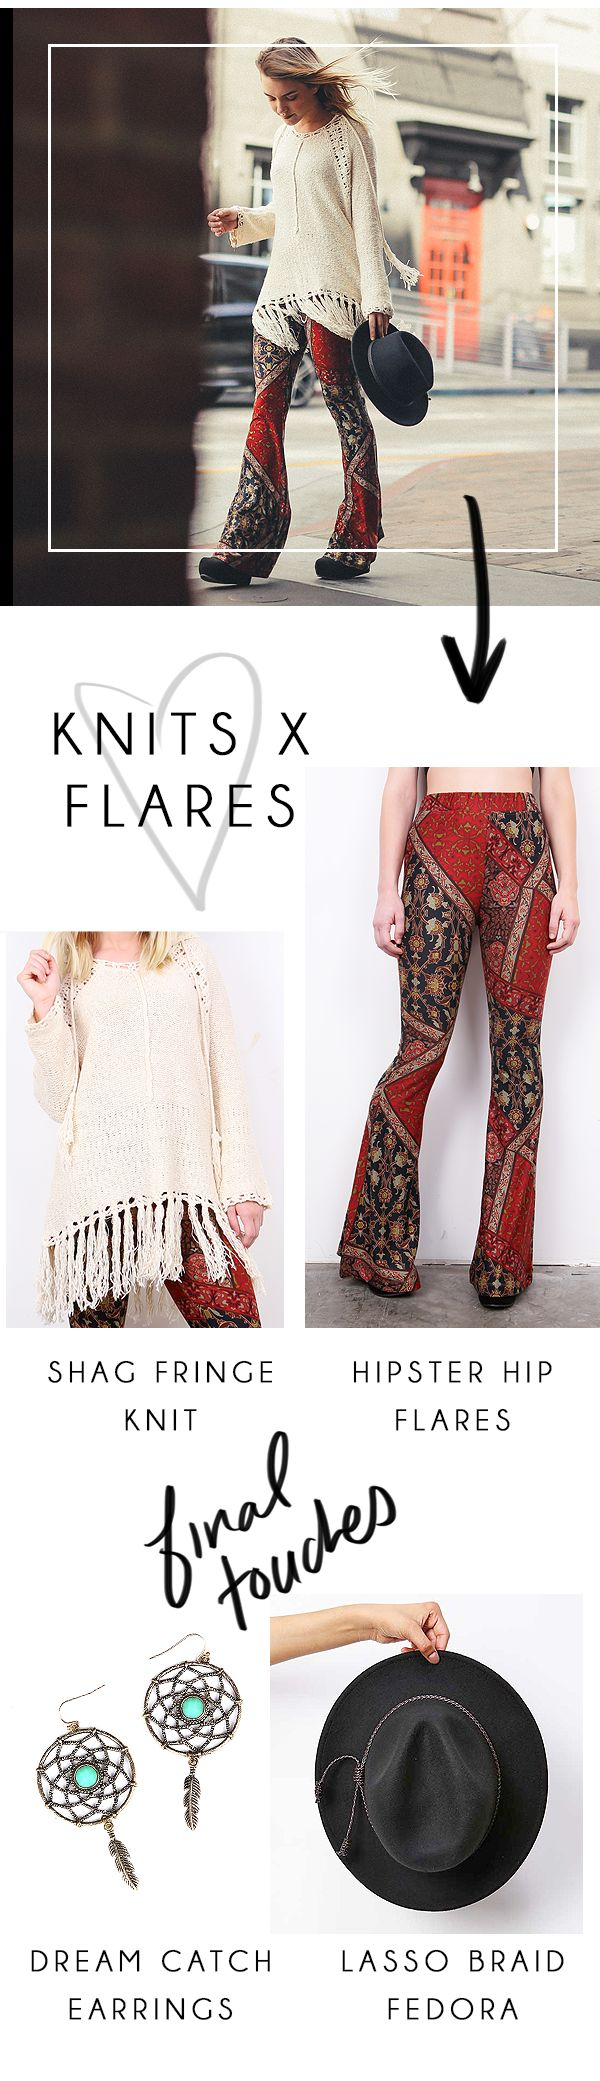 Cute knits and flared hipster pants #flaredbottoms #cuteknits #pinkice  http://www.pinkice.com/Search?search=streetstyle